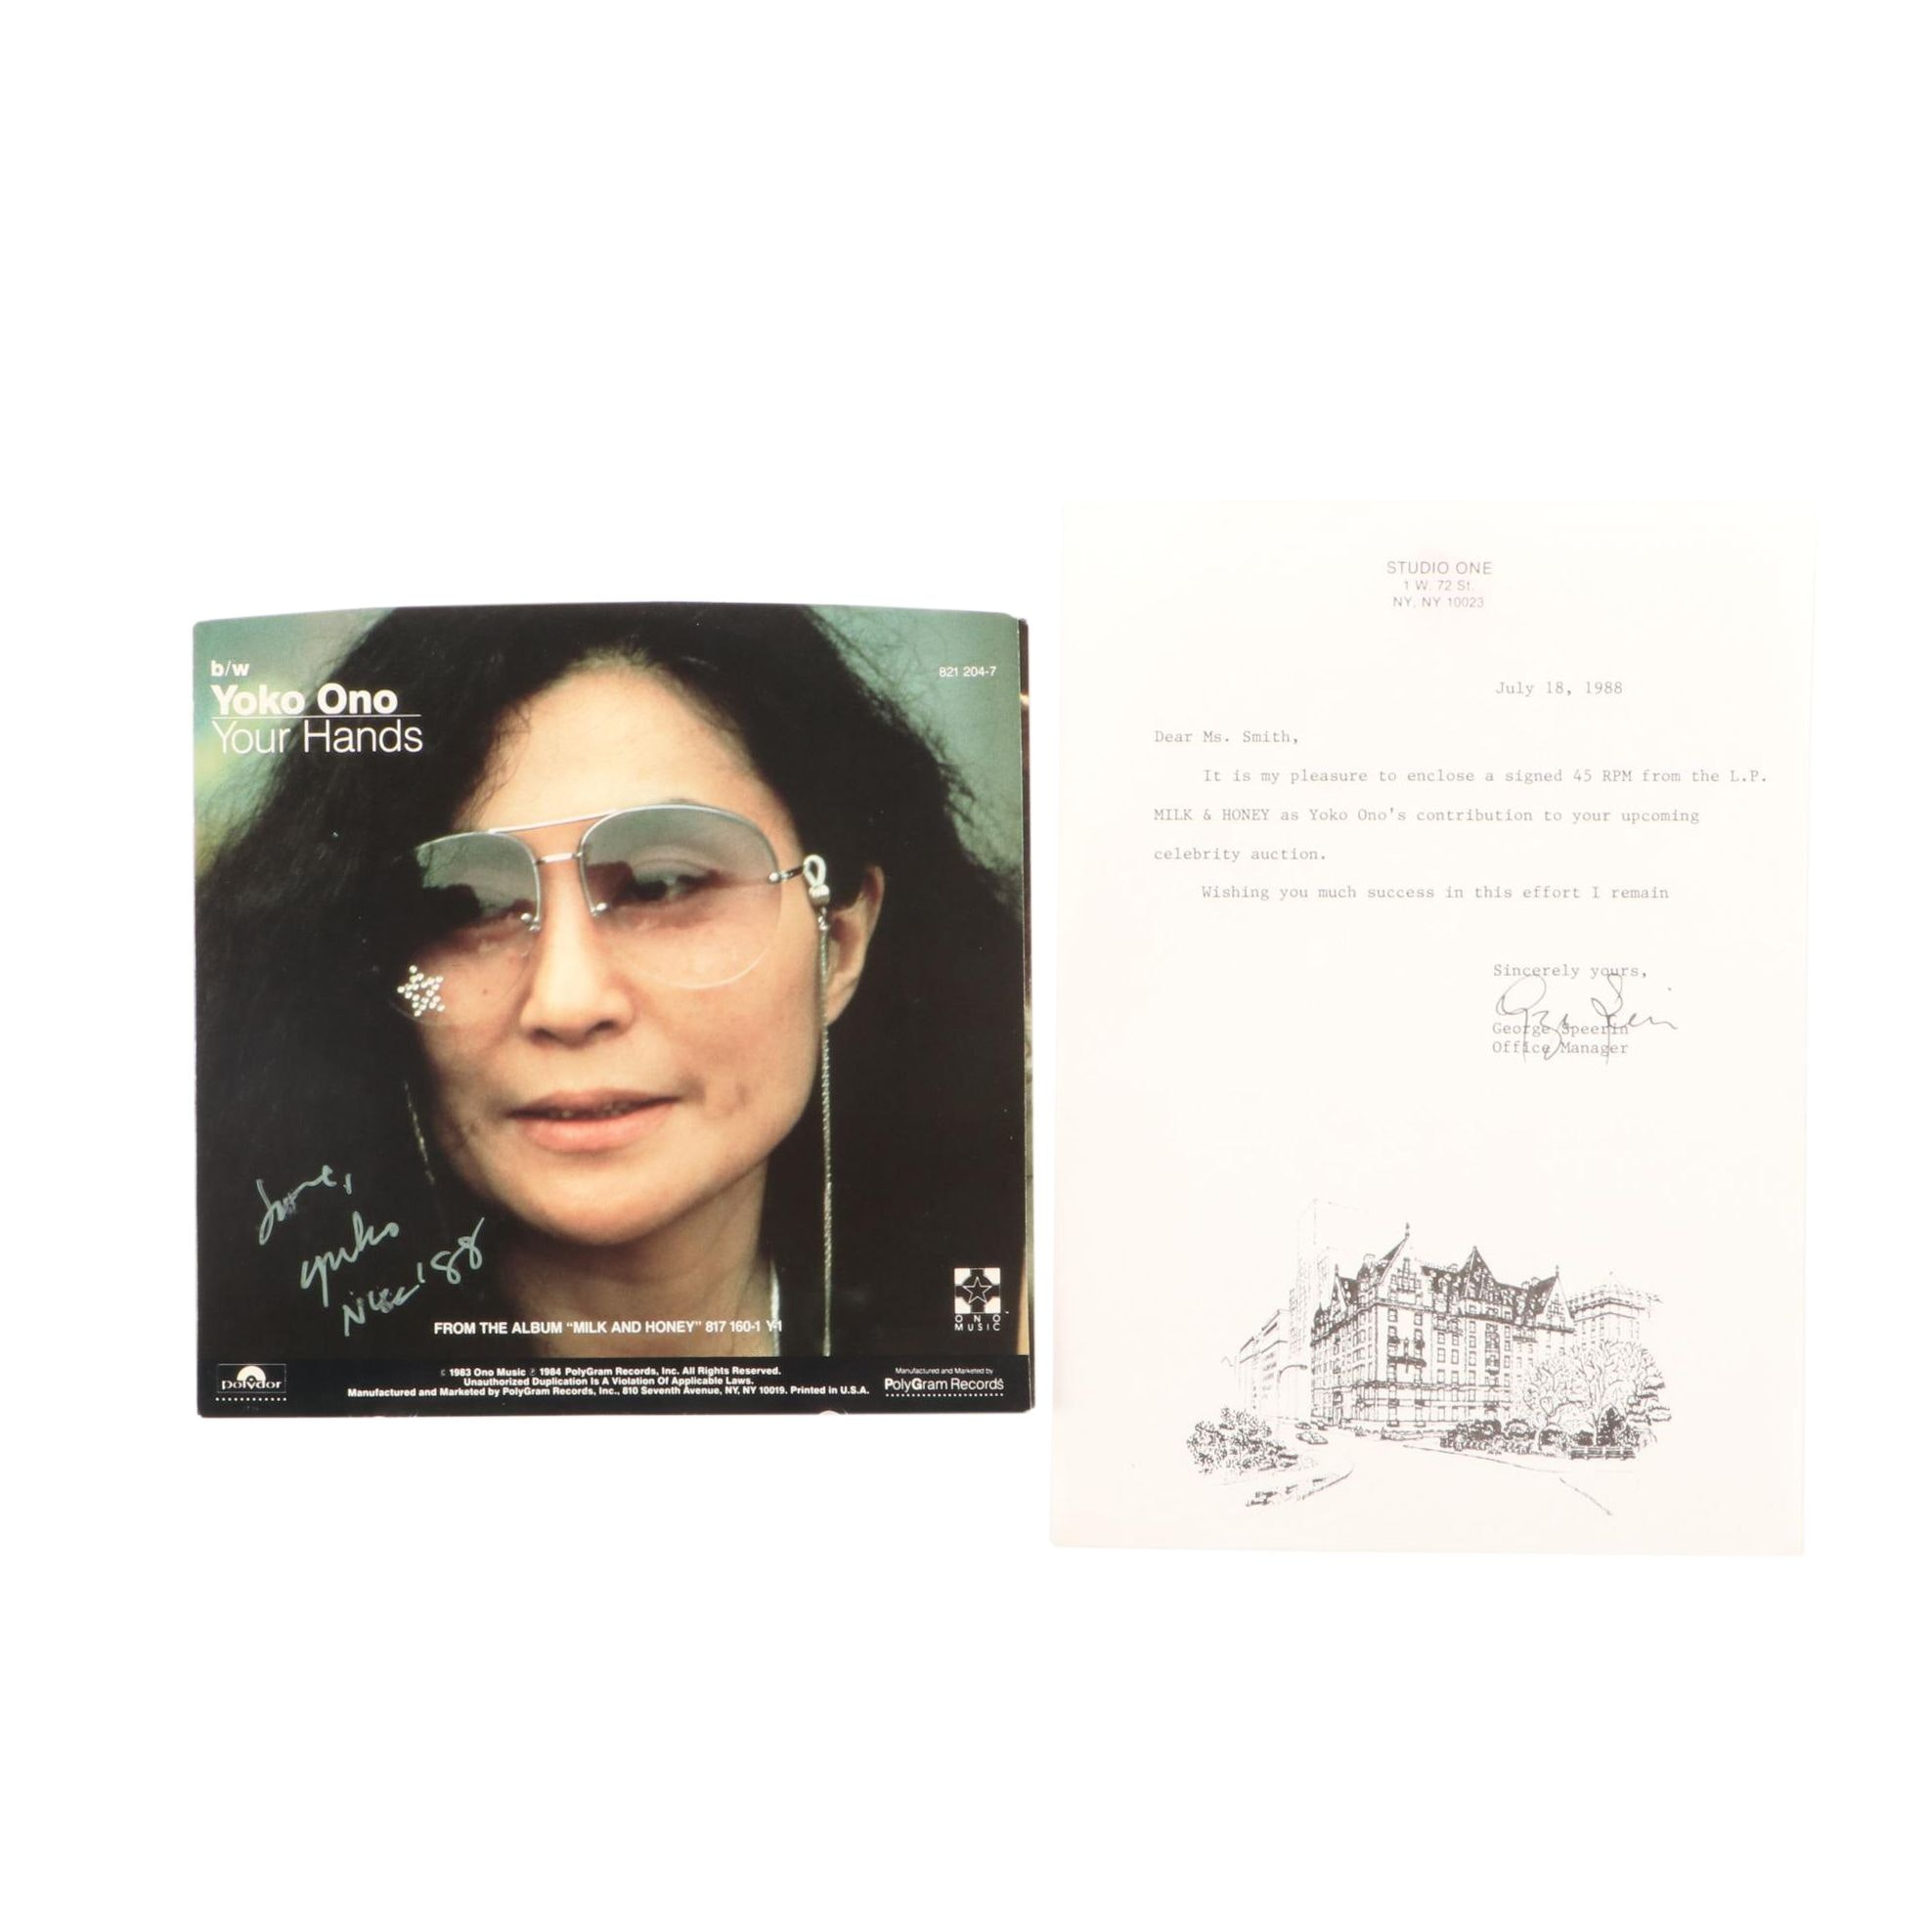 1988 Yoko Ono Signed 45 RPM Record Cover With Letter COA